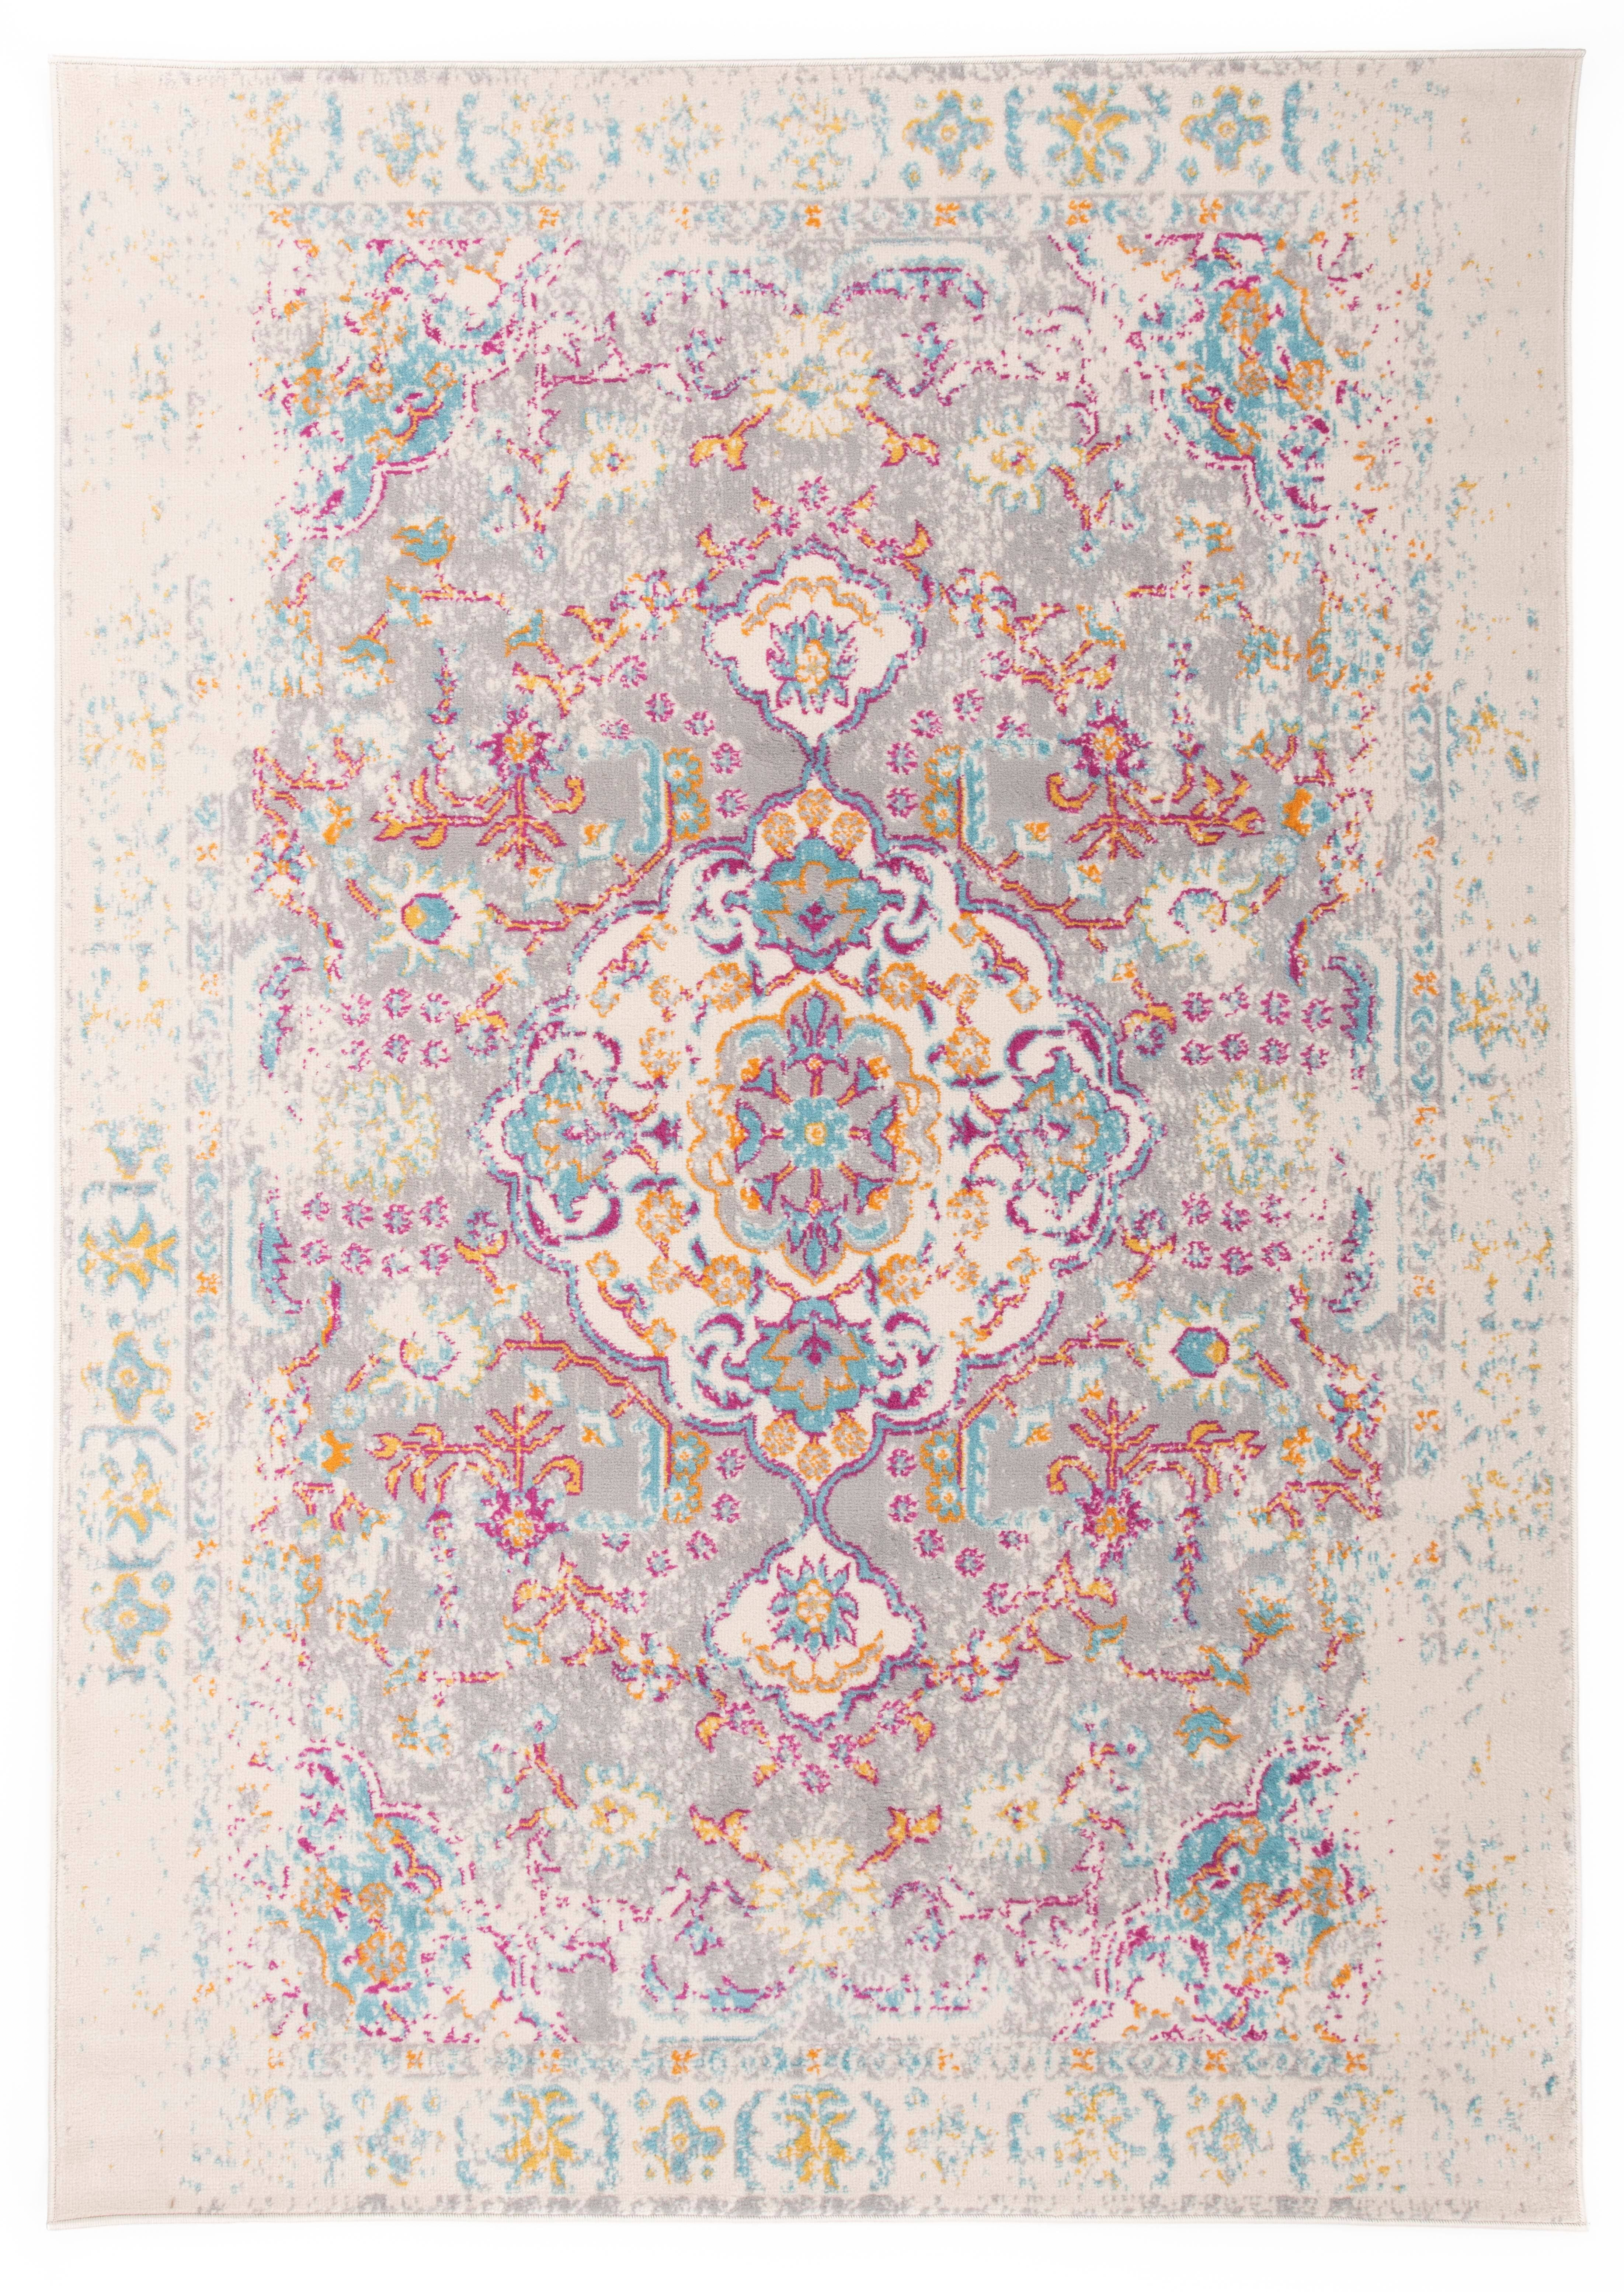 5x7 Vintage Area Rug 5x7 $49.90 + Free Shipping